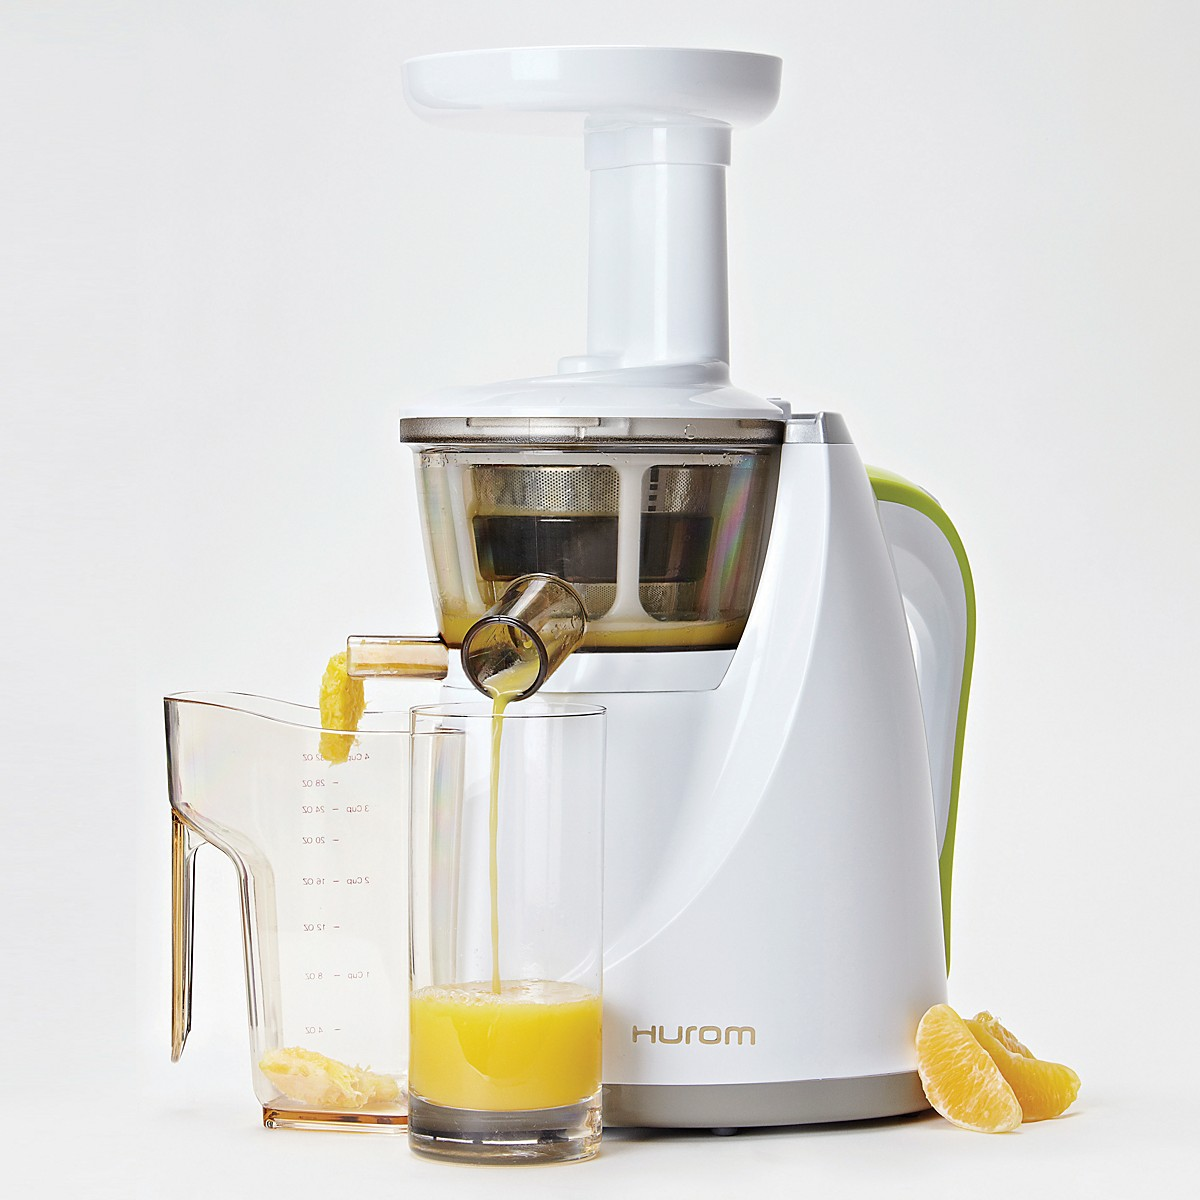 Hurom Or Kuvings Slow Juicer : The Wish List 2014 Our favourite kitchen appliances for chefs and avid home cooks